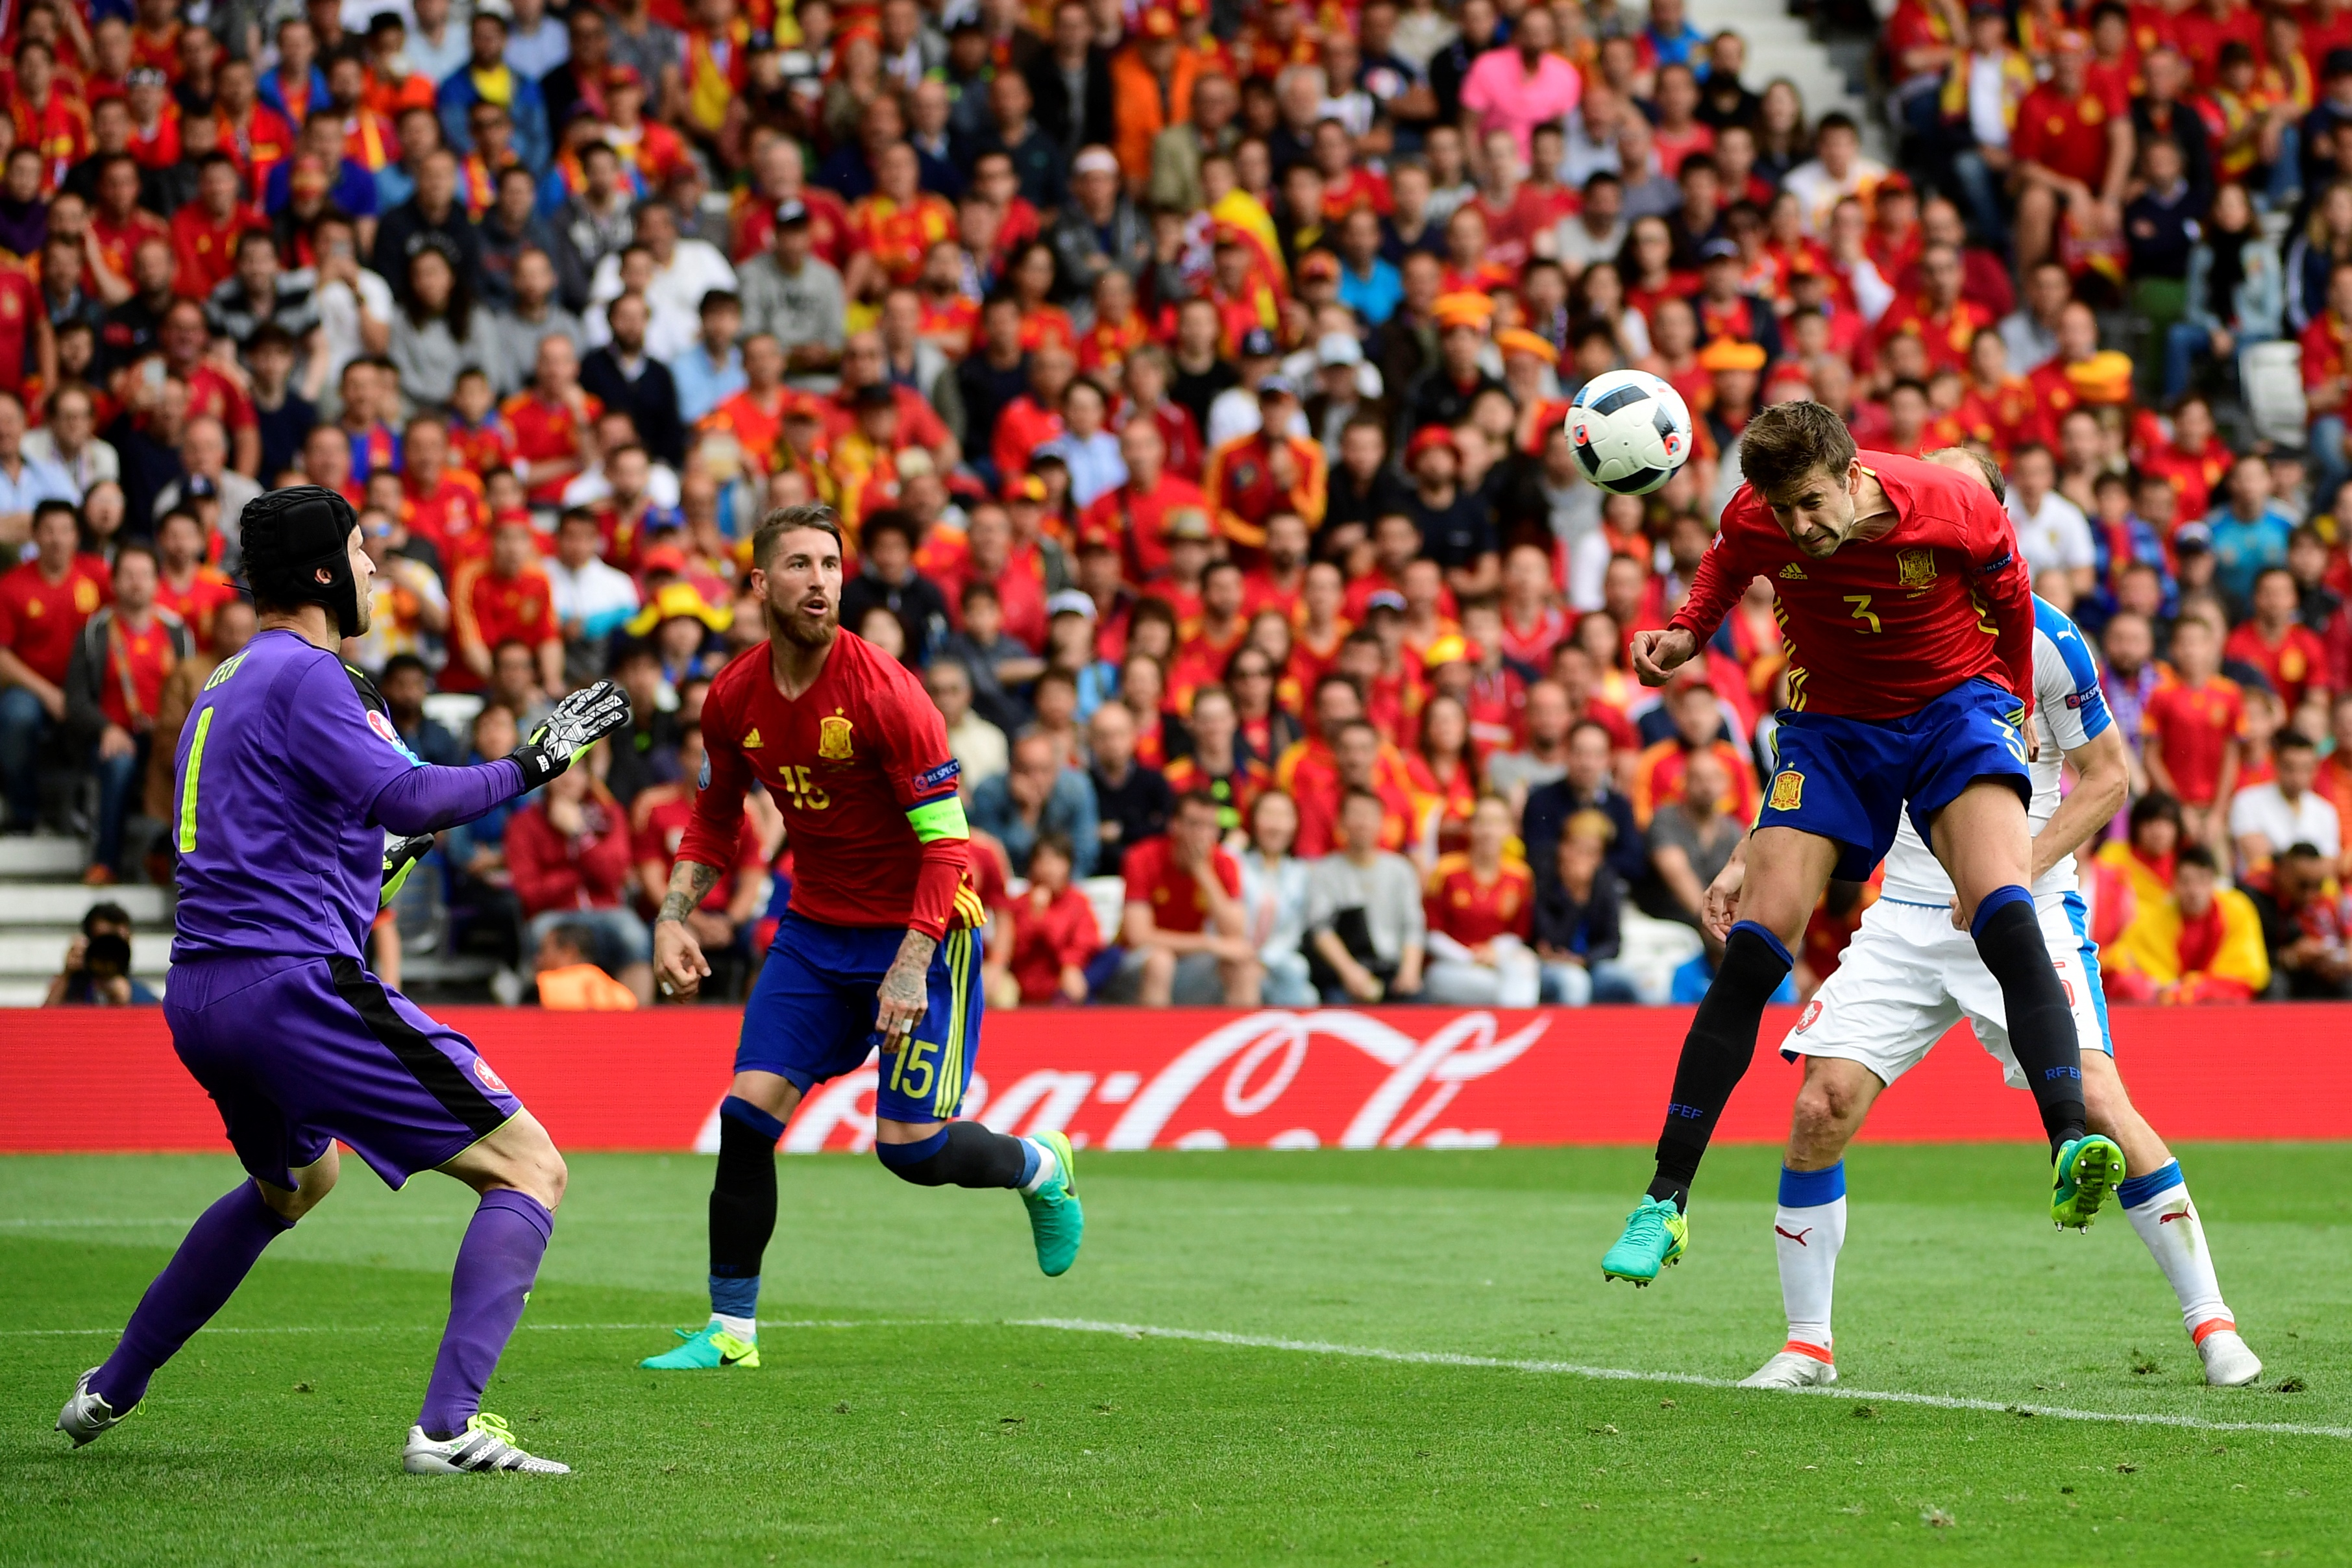 Spain's defender Gerard Pique (R) scores a goal past Czech Republic's goalkeeper Petr Cech (L) during the Euro 2016 group D football match between Spain and Czech Republic at the Stadium Municipal in Toulouse on June 13, 2016. Spain won the match 1-0. / AFP / PIERRE-PHILIPPE MARCOU        (Photo credit should read )